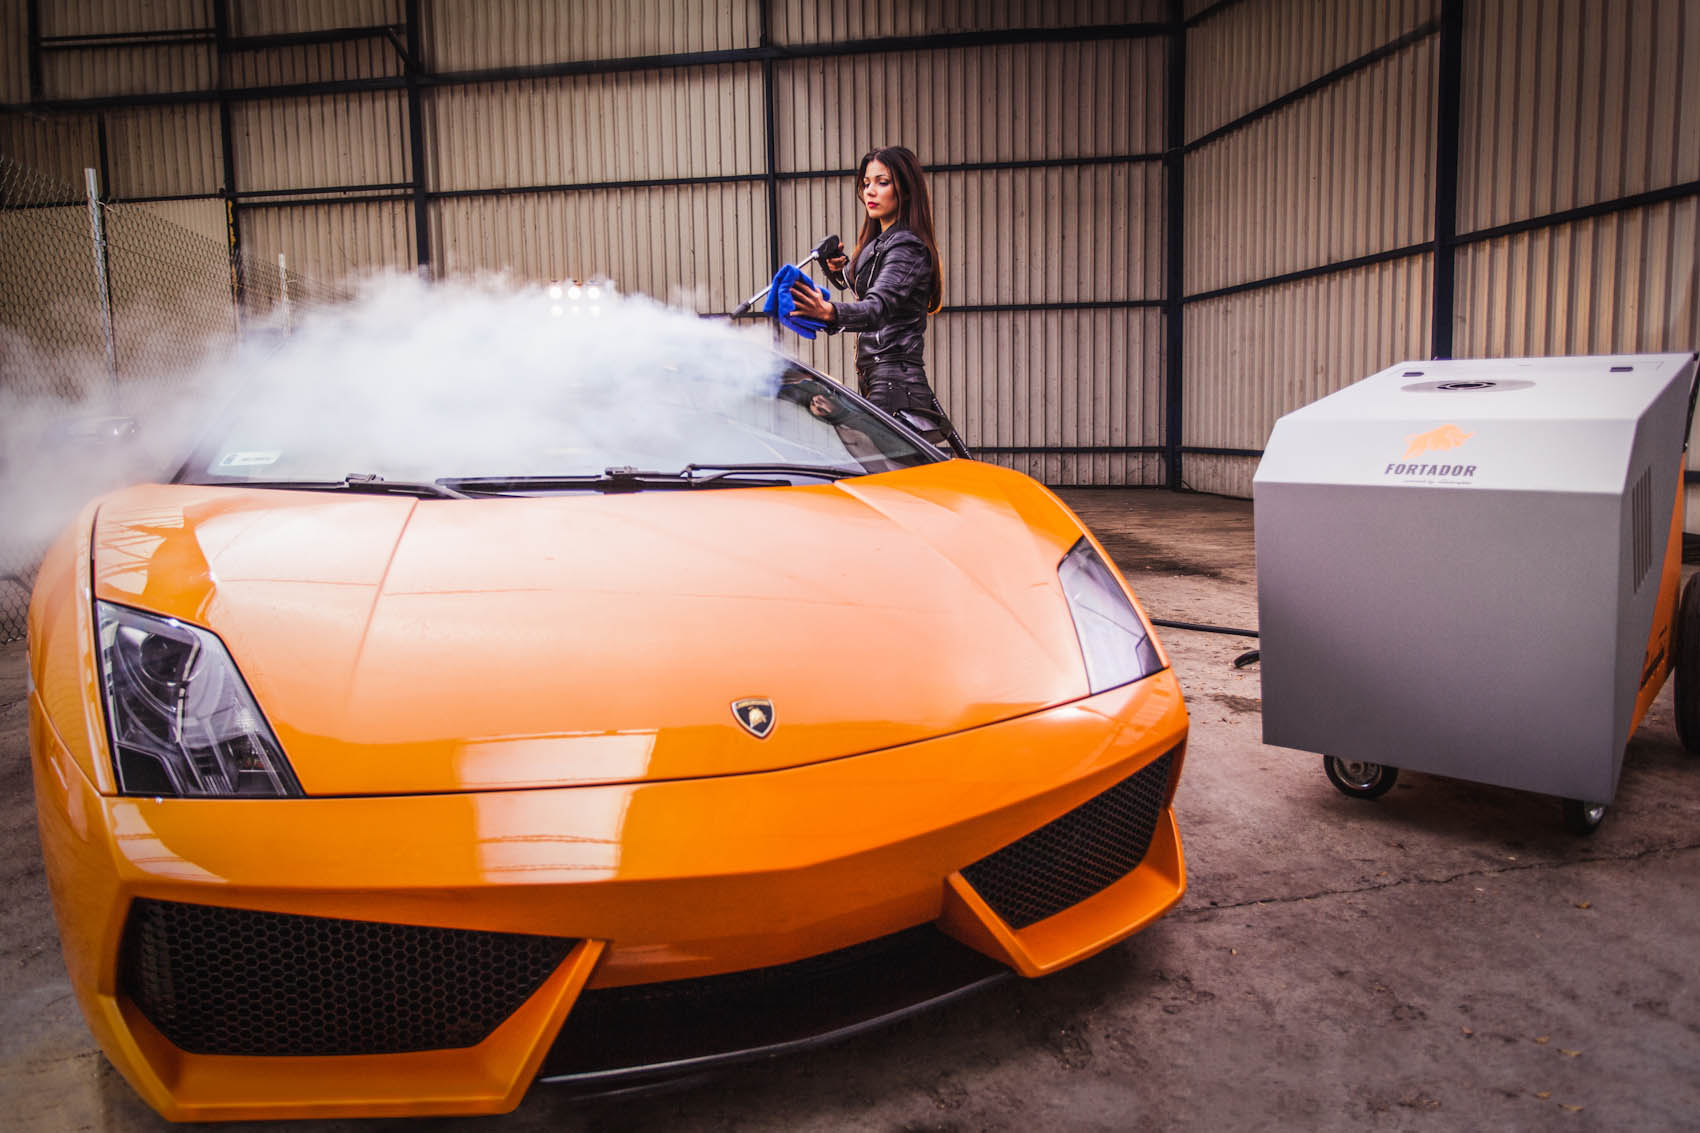 Fortador steam cleaner working on a lamborghini.